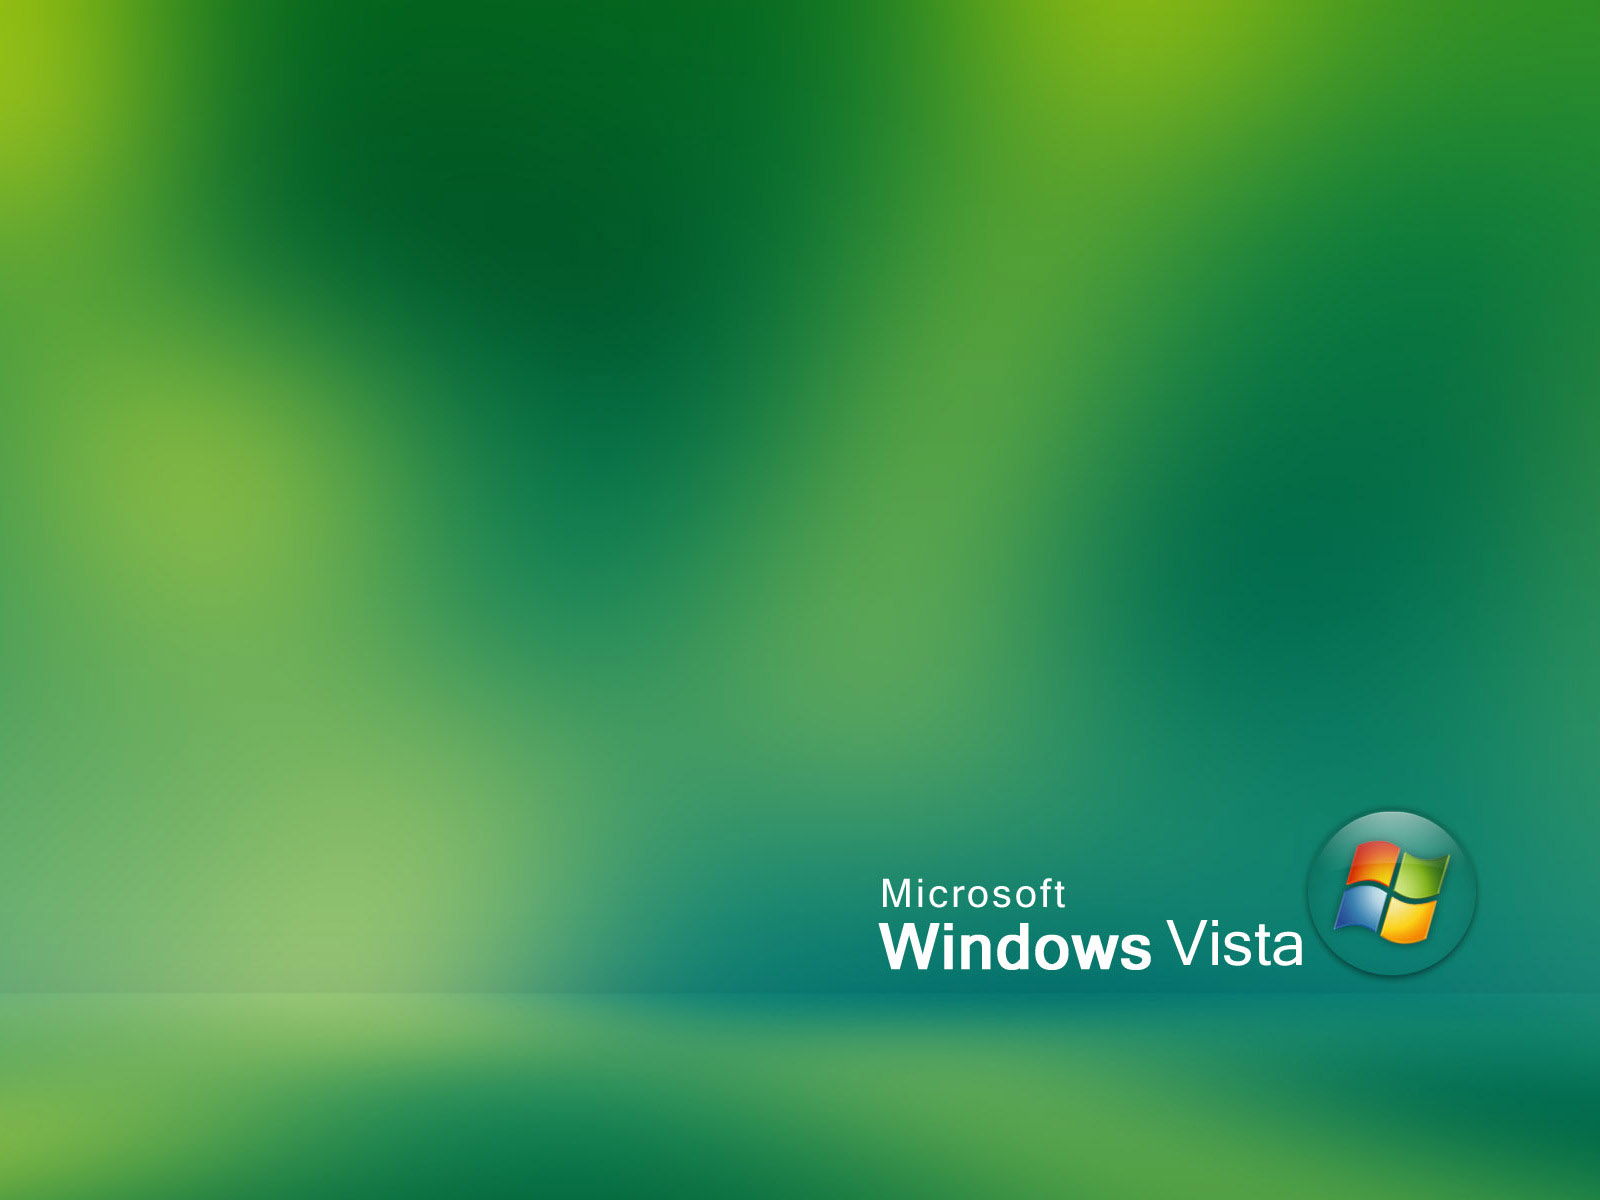 windows vista backgrounds hd wallpapers